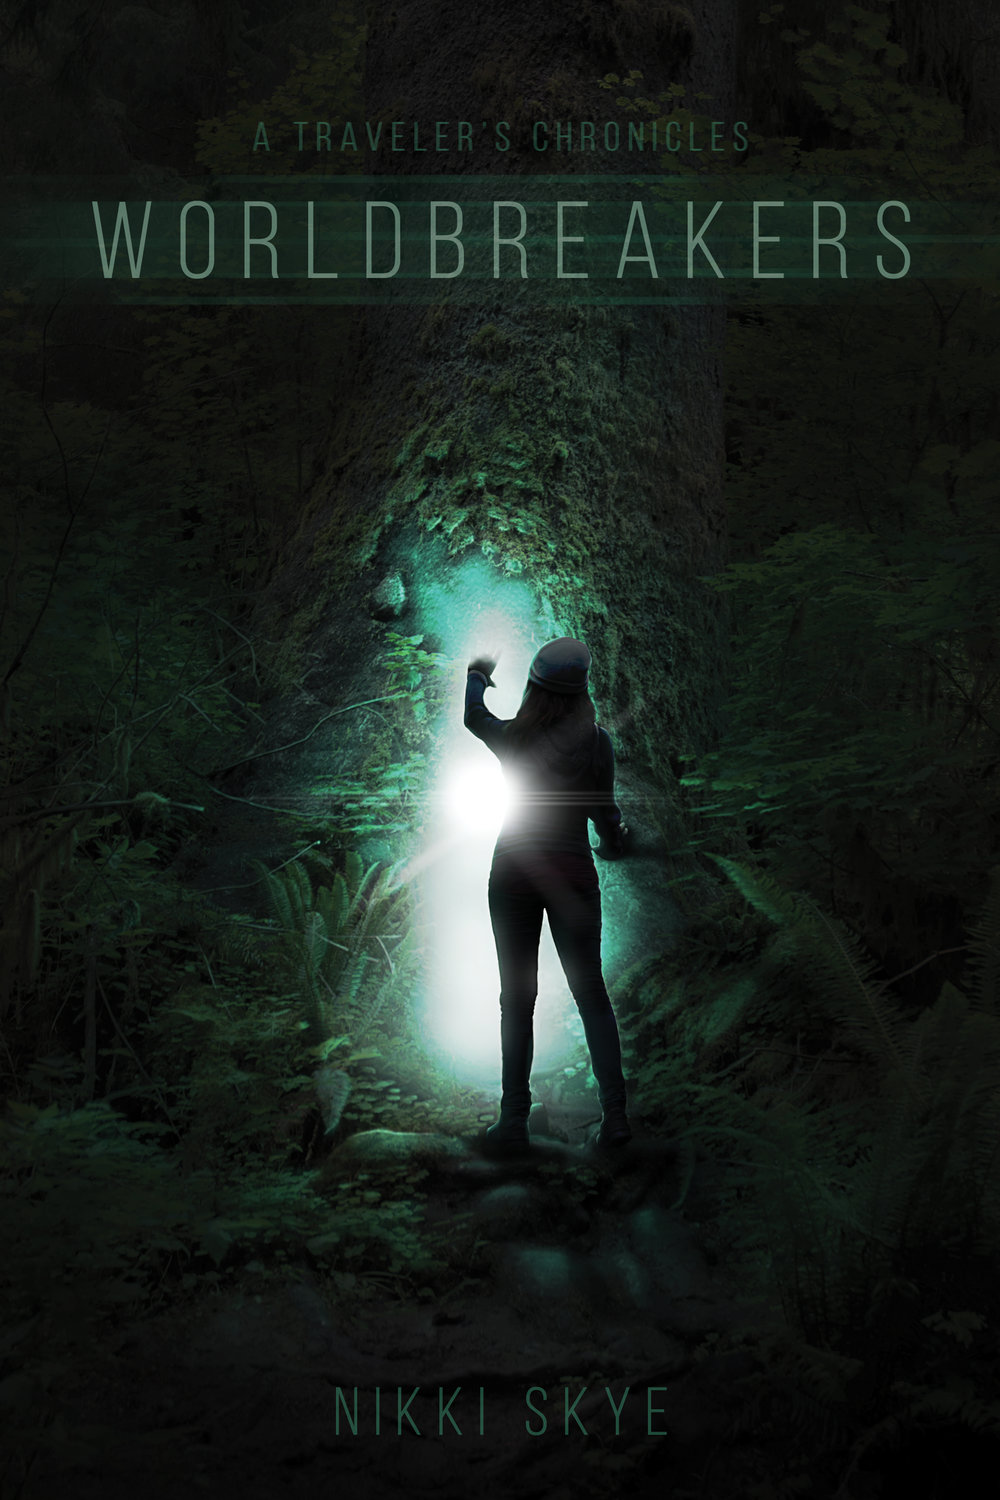 """A Traveler's Chronicles : Worldbreakers"" December 2018  Book cover art"